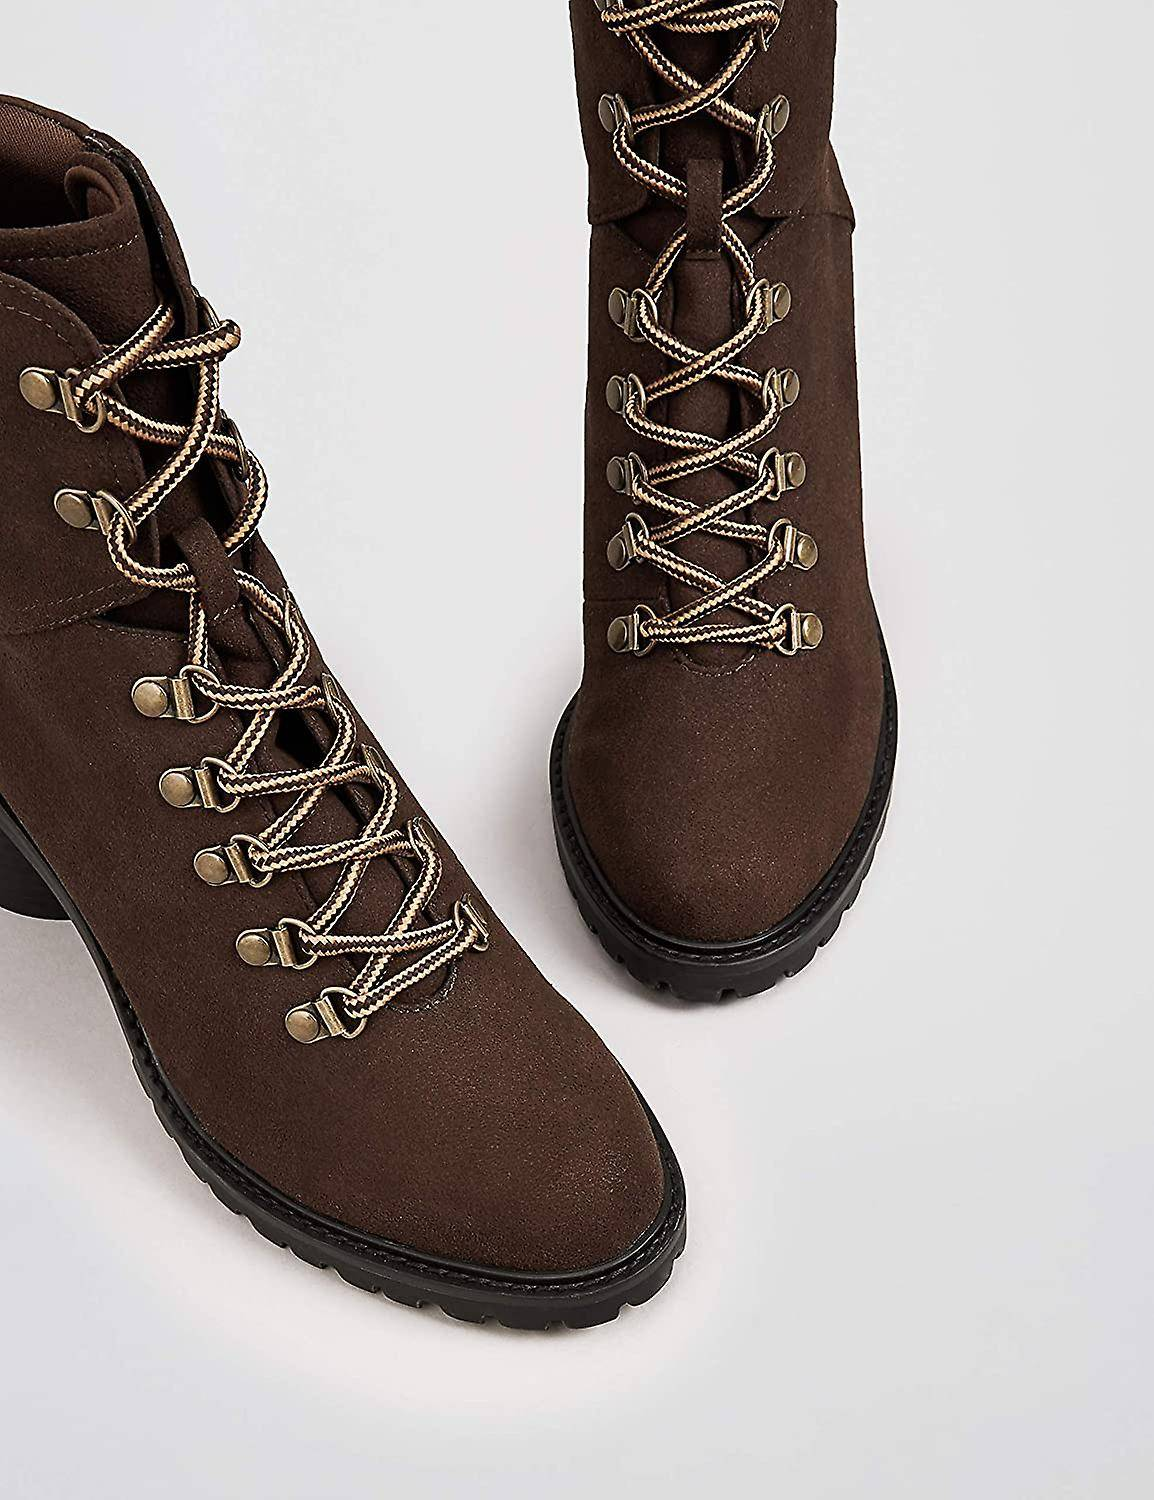 find. Marque - trouver. Chunky Hiker, Femmes-apos;s Bottines Brown 9.5 US / 7.5 UK